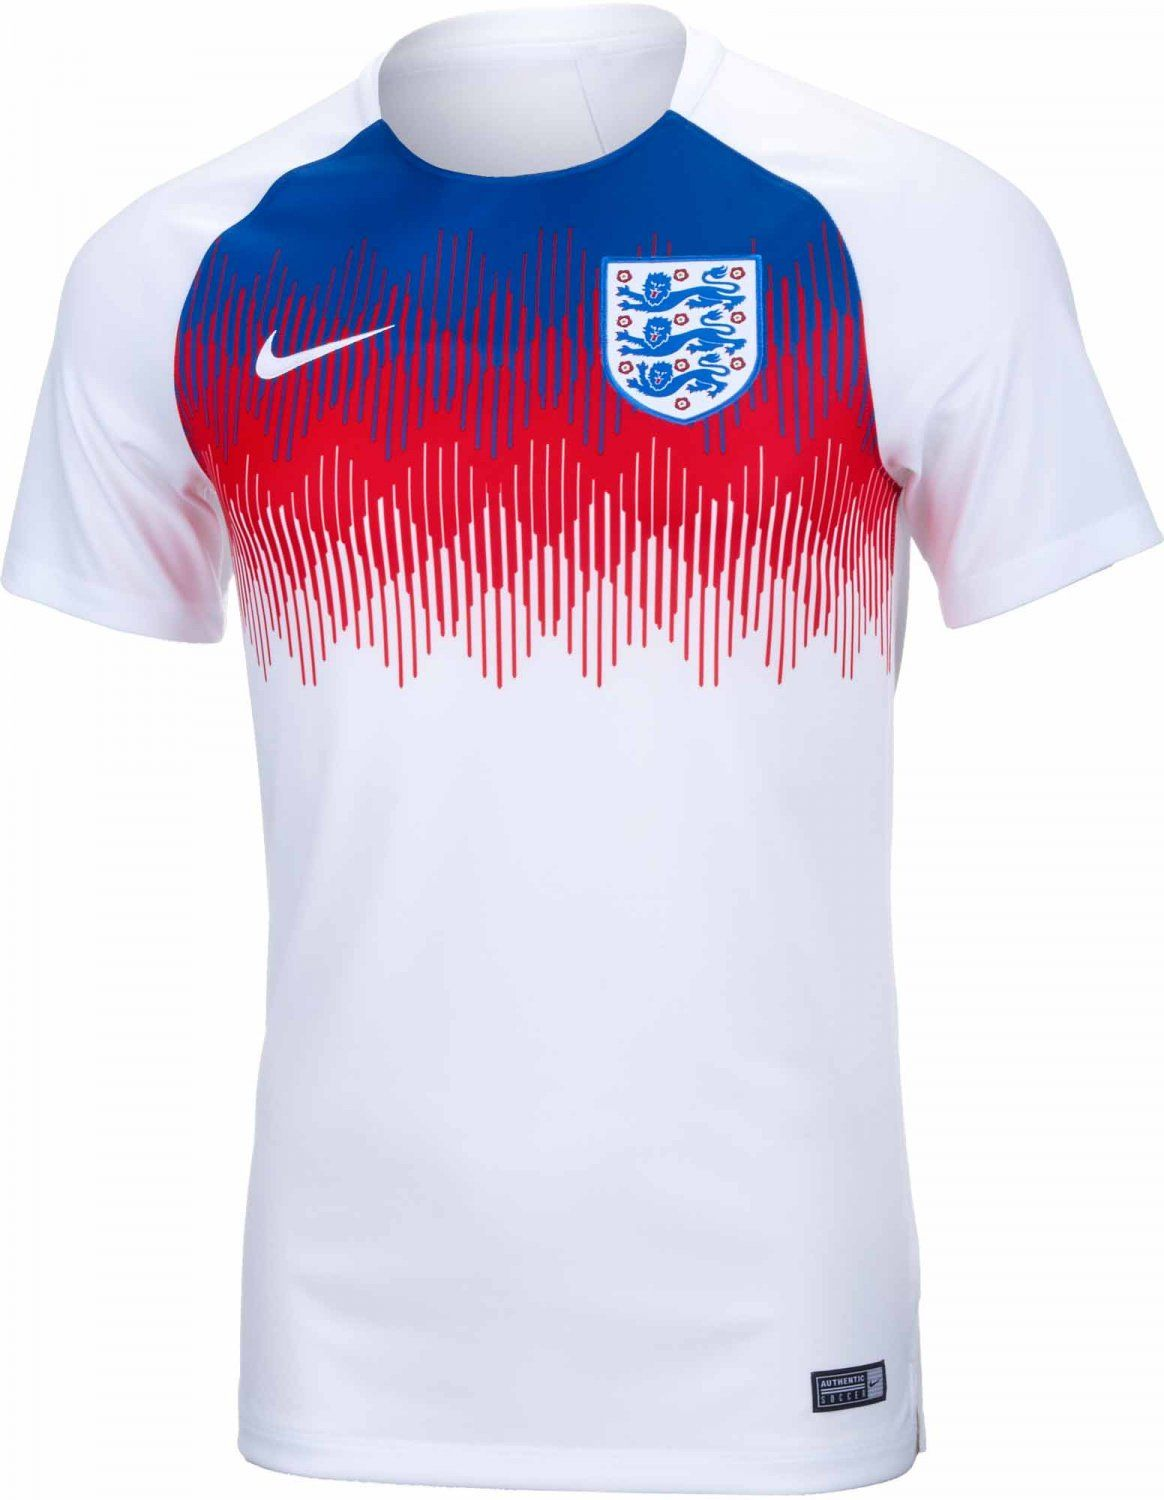 Men S England National Team Training 2018 2019 Soccer Jersey Navy Realmadrid Bayern Football Cr Camisetas De Futebol Camisetas De Time Camisas De Futebol